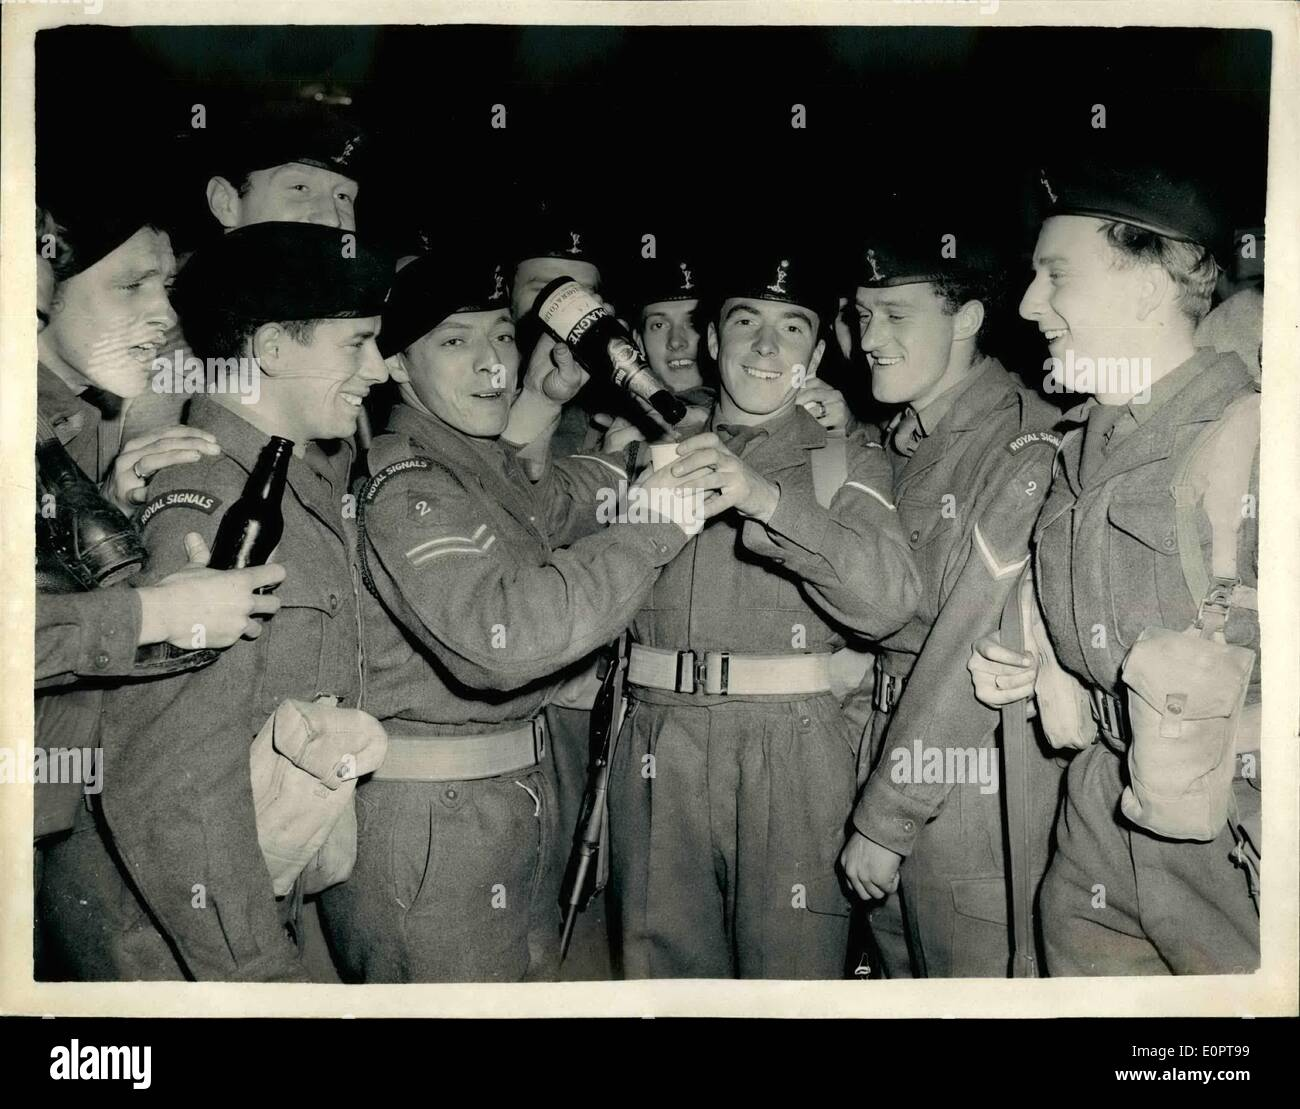 Dec. 12, 1956 - TROOPS FROM SUEZ ARRIVE IN LONDON COULD BE CHAMPAGNE-BUT IT ISN'T. Troops on leave from Port Said-arrived at Waterloo Station this afternoon. KEYSTONE PHOTO SHOWS: A happy party of members of the Royal Corps of Signals - at Waterloo this afternoon enjoy a drink - which should be champagne but which is really tea-- In centre (left) is CPL. J. GEORGESON of Liverpool and (right) L/CPL. London Airport KEACH of Bradford. - Stock Image